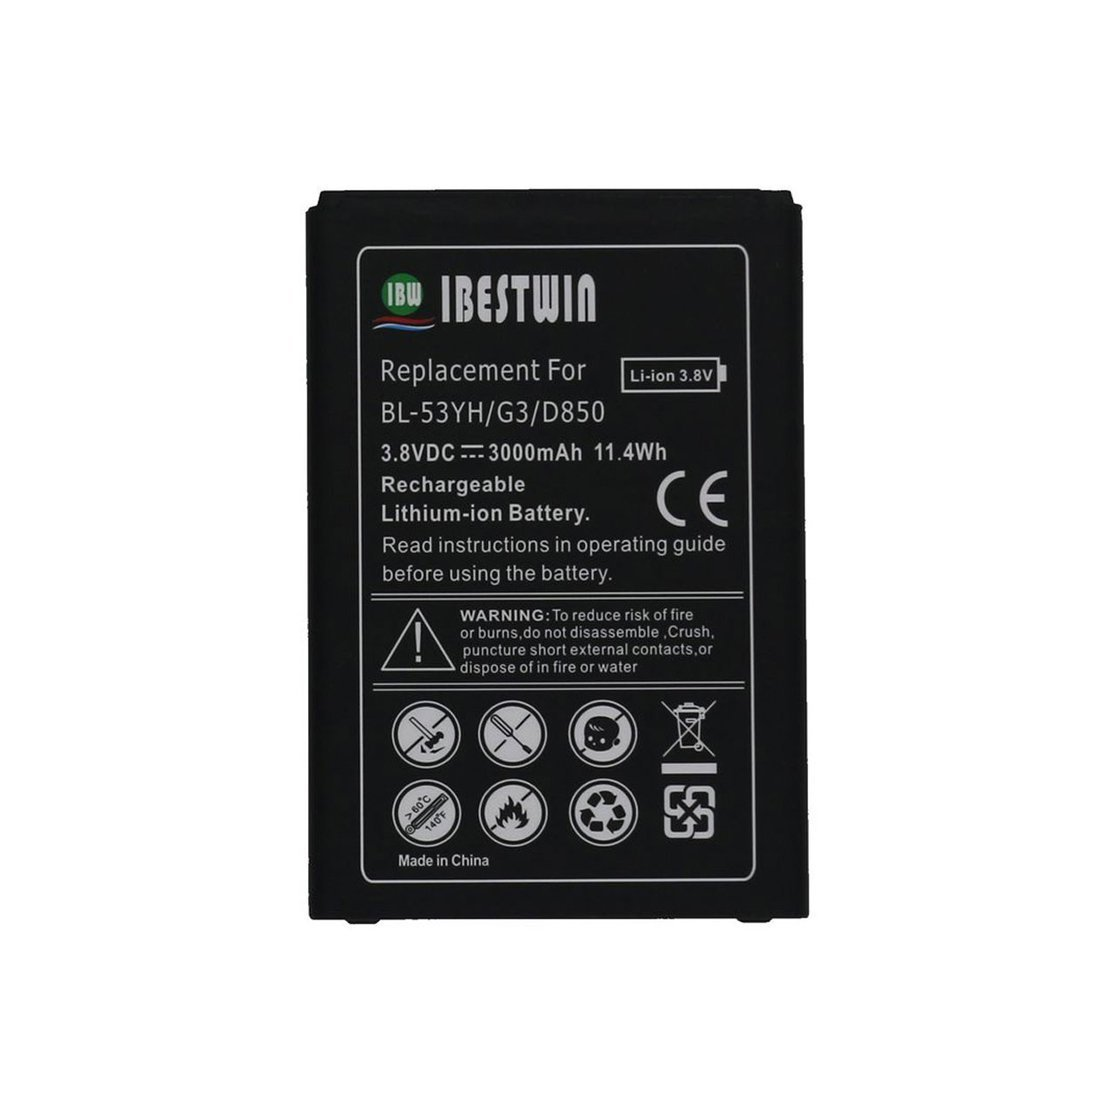 IBESTWIN G3 Battery Replacement for LG G3,D850(AT&T), D851(T-Mobile), LS990(Sprint), VS985(Version) (G3 3000mAh)